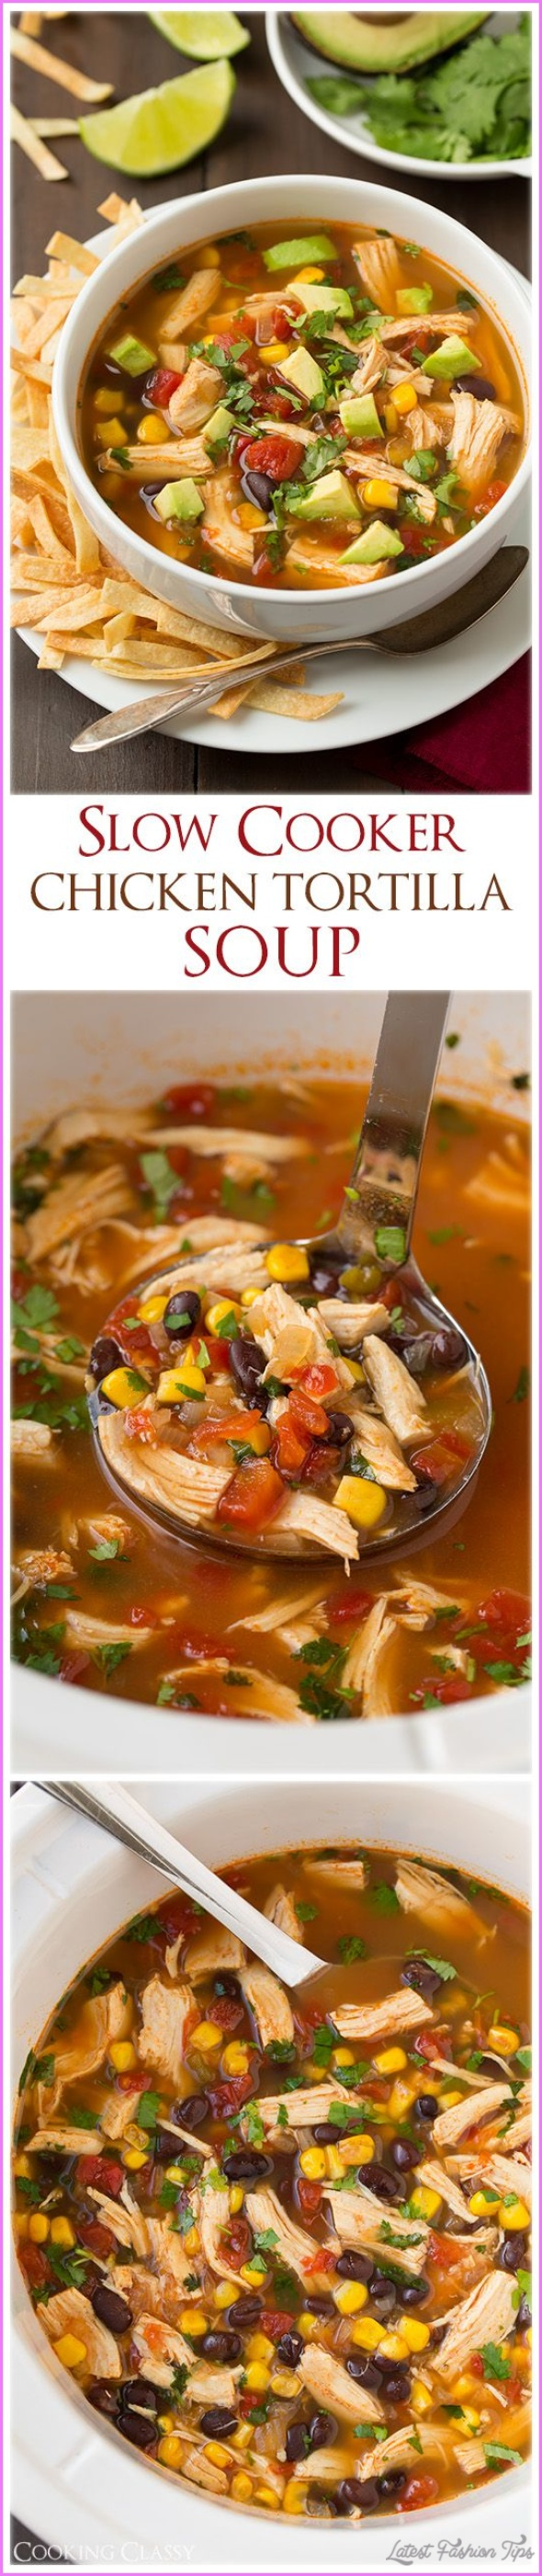 Slow Cooked Chicken Coriander Enchilada Soup_12.jpg